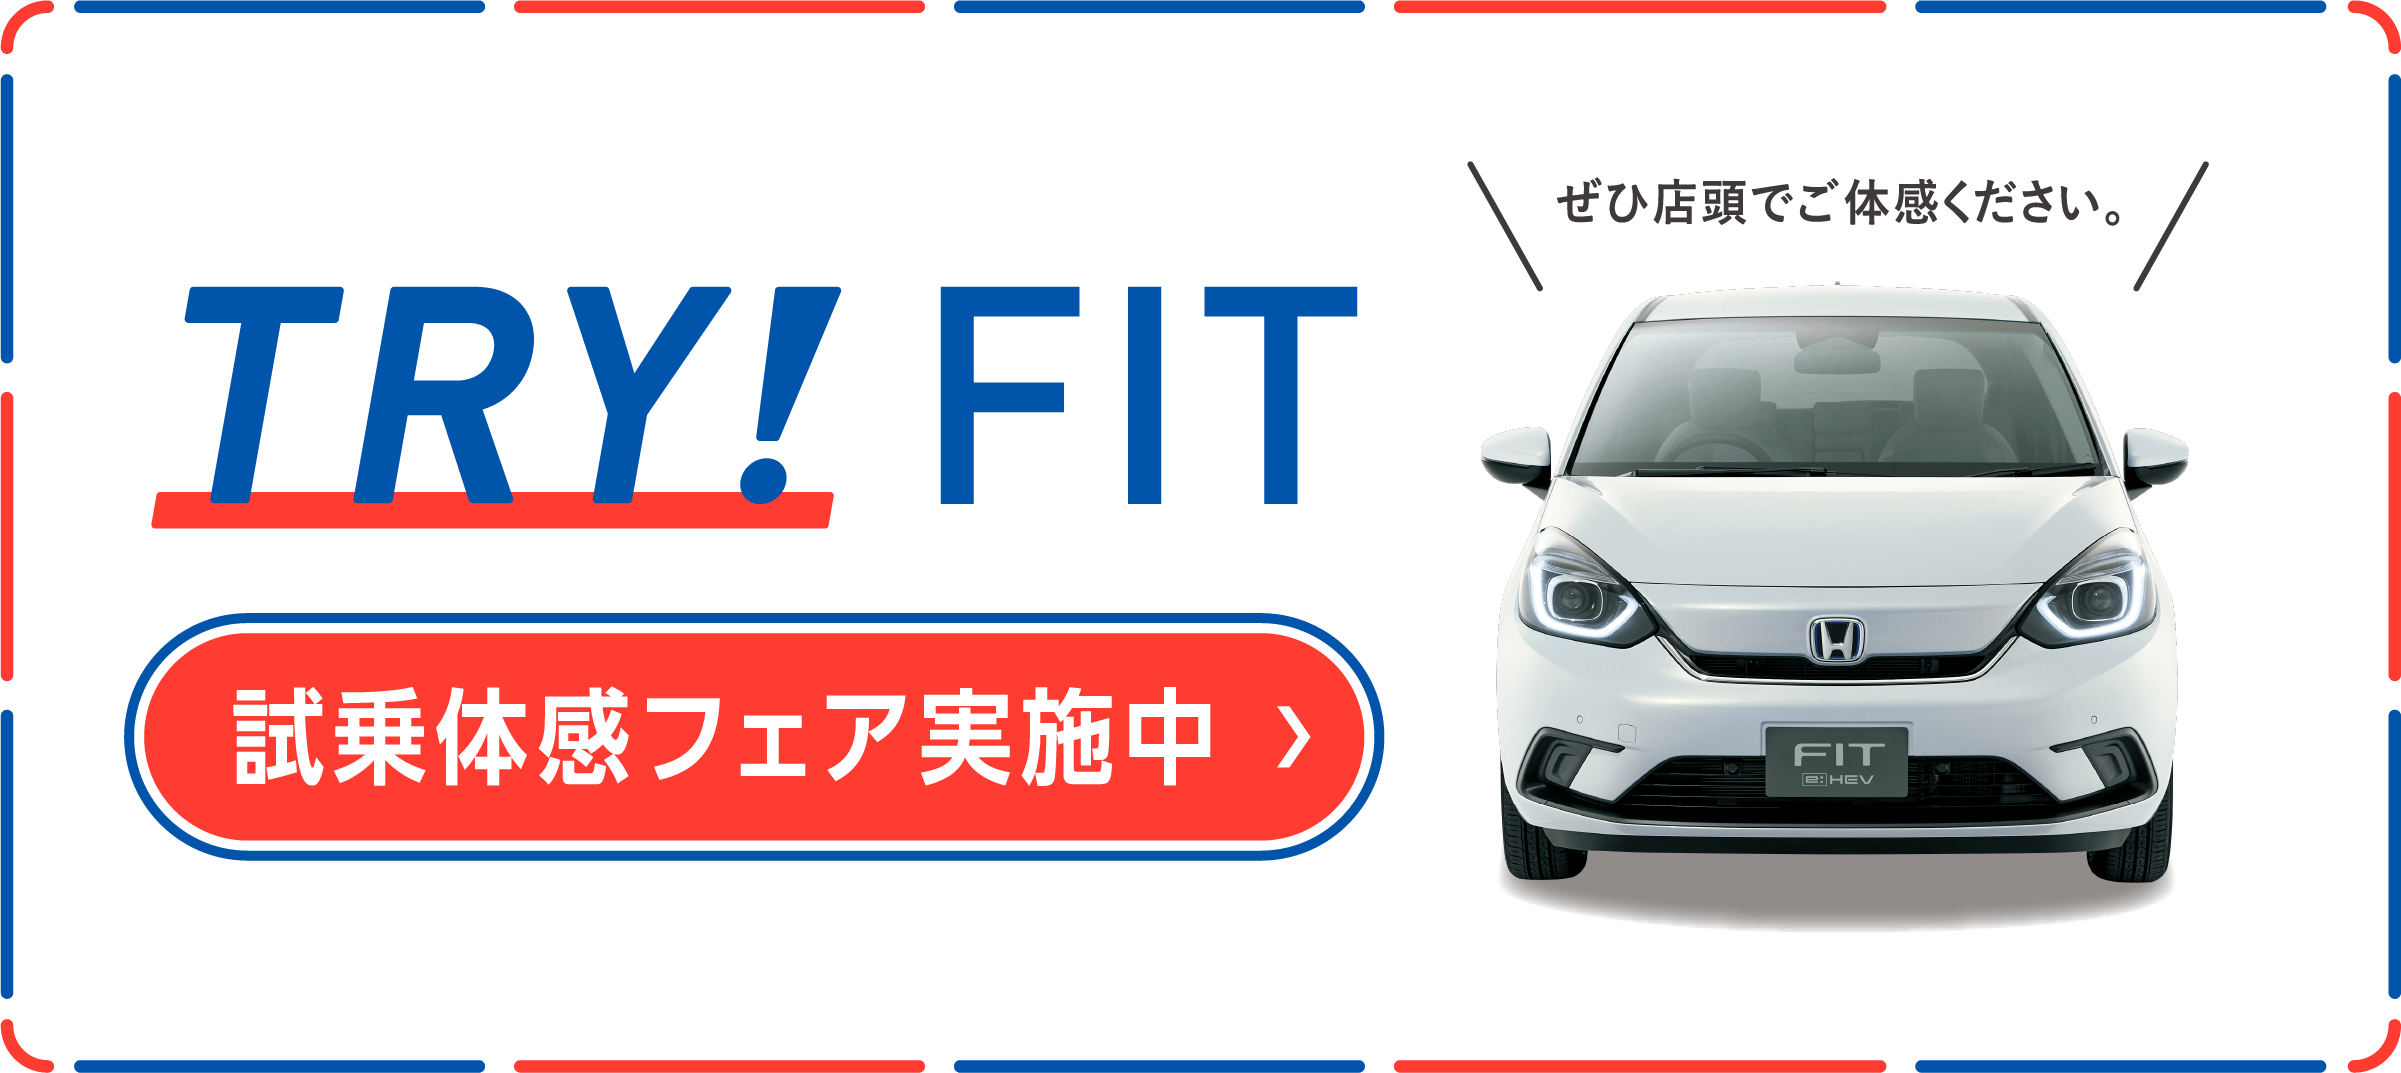 NEW FIT 登場